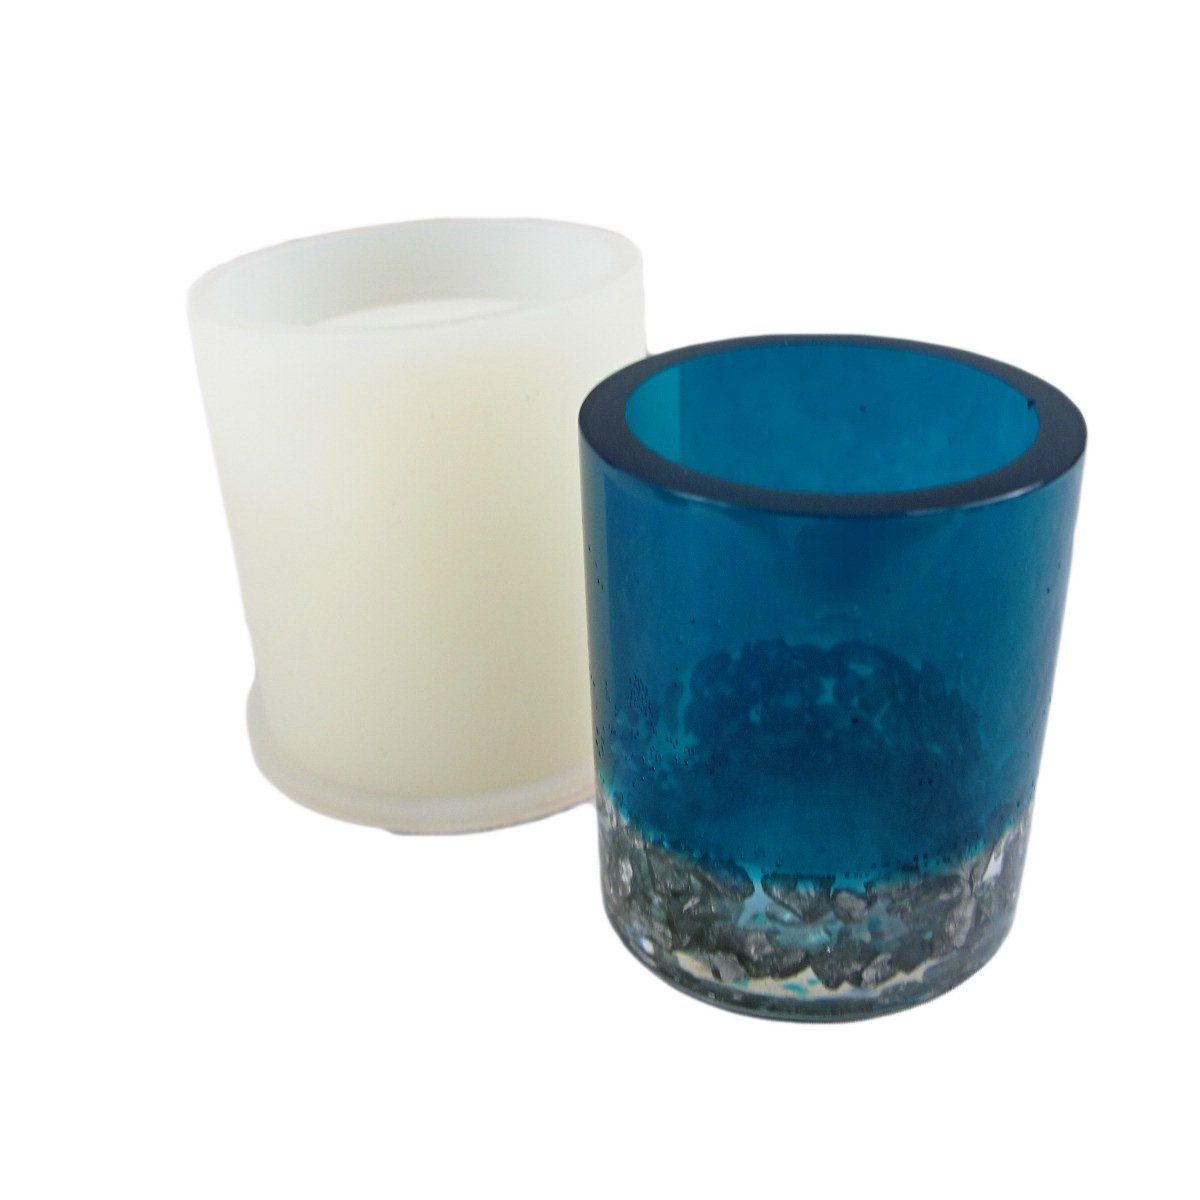 Clear silicone round vase mold - great for pencil holders